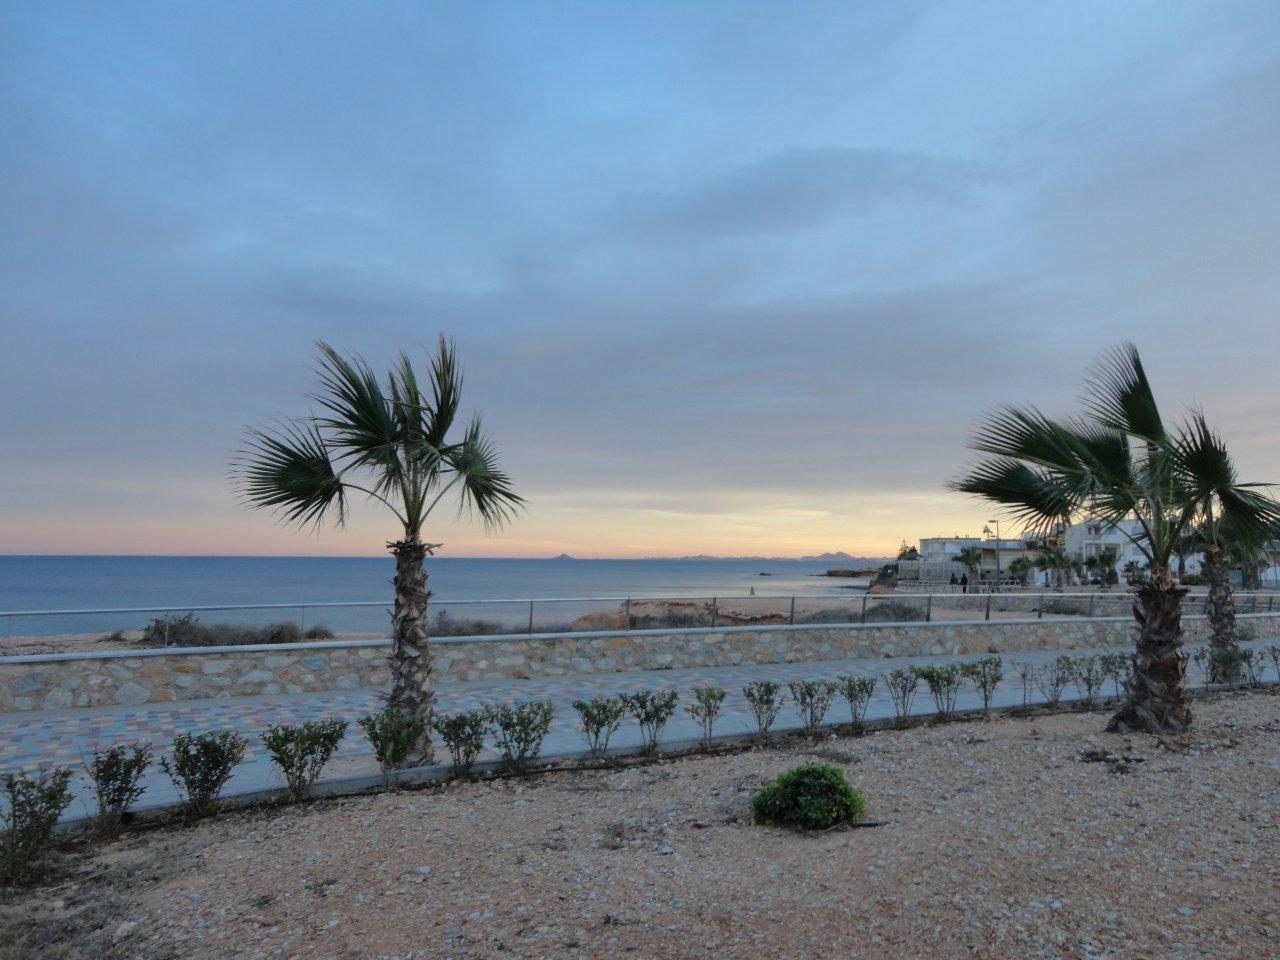 Mil palmeras costa blanca espagne enjoy your stay - La contemporaine residence de plage las palmeras ...